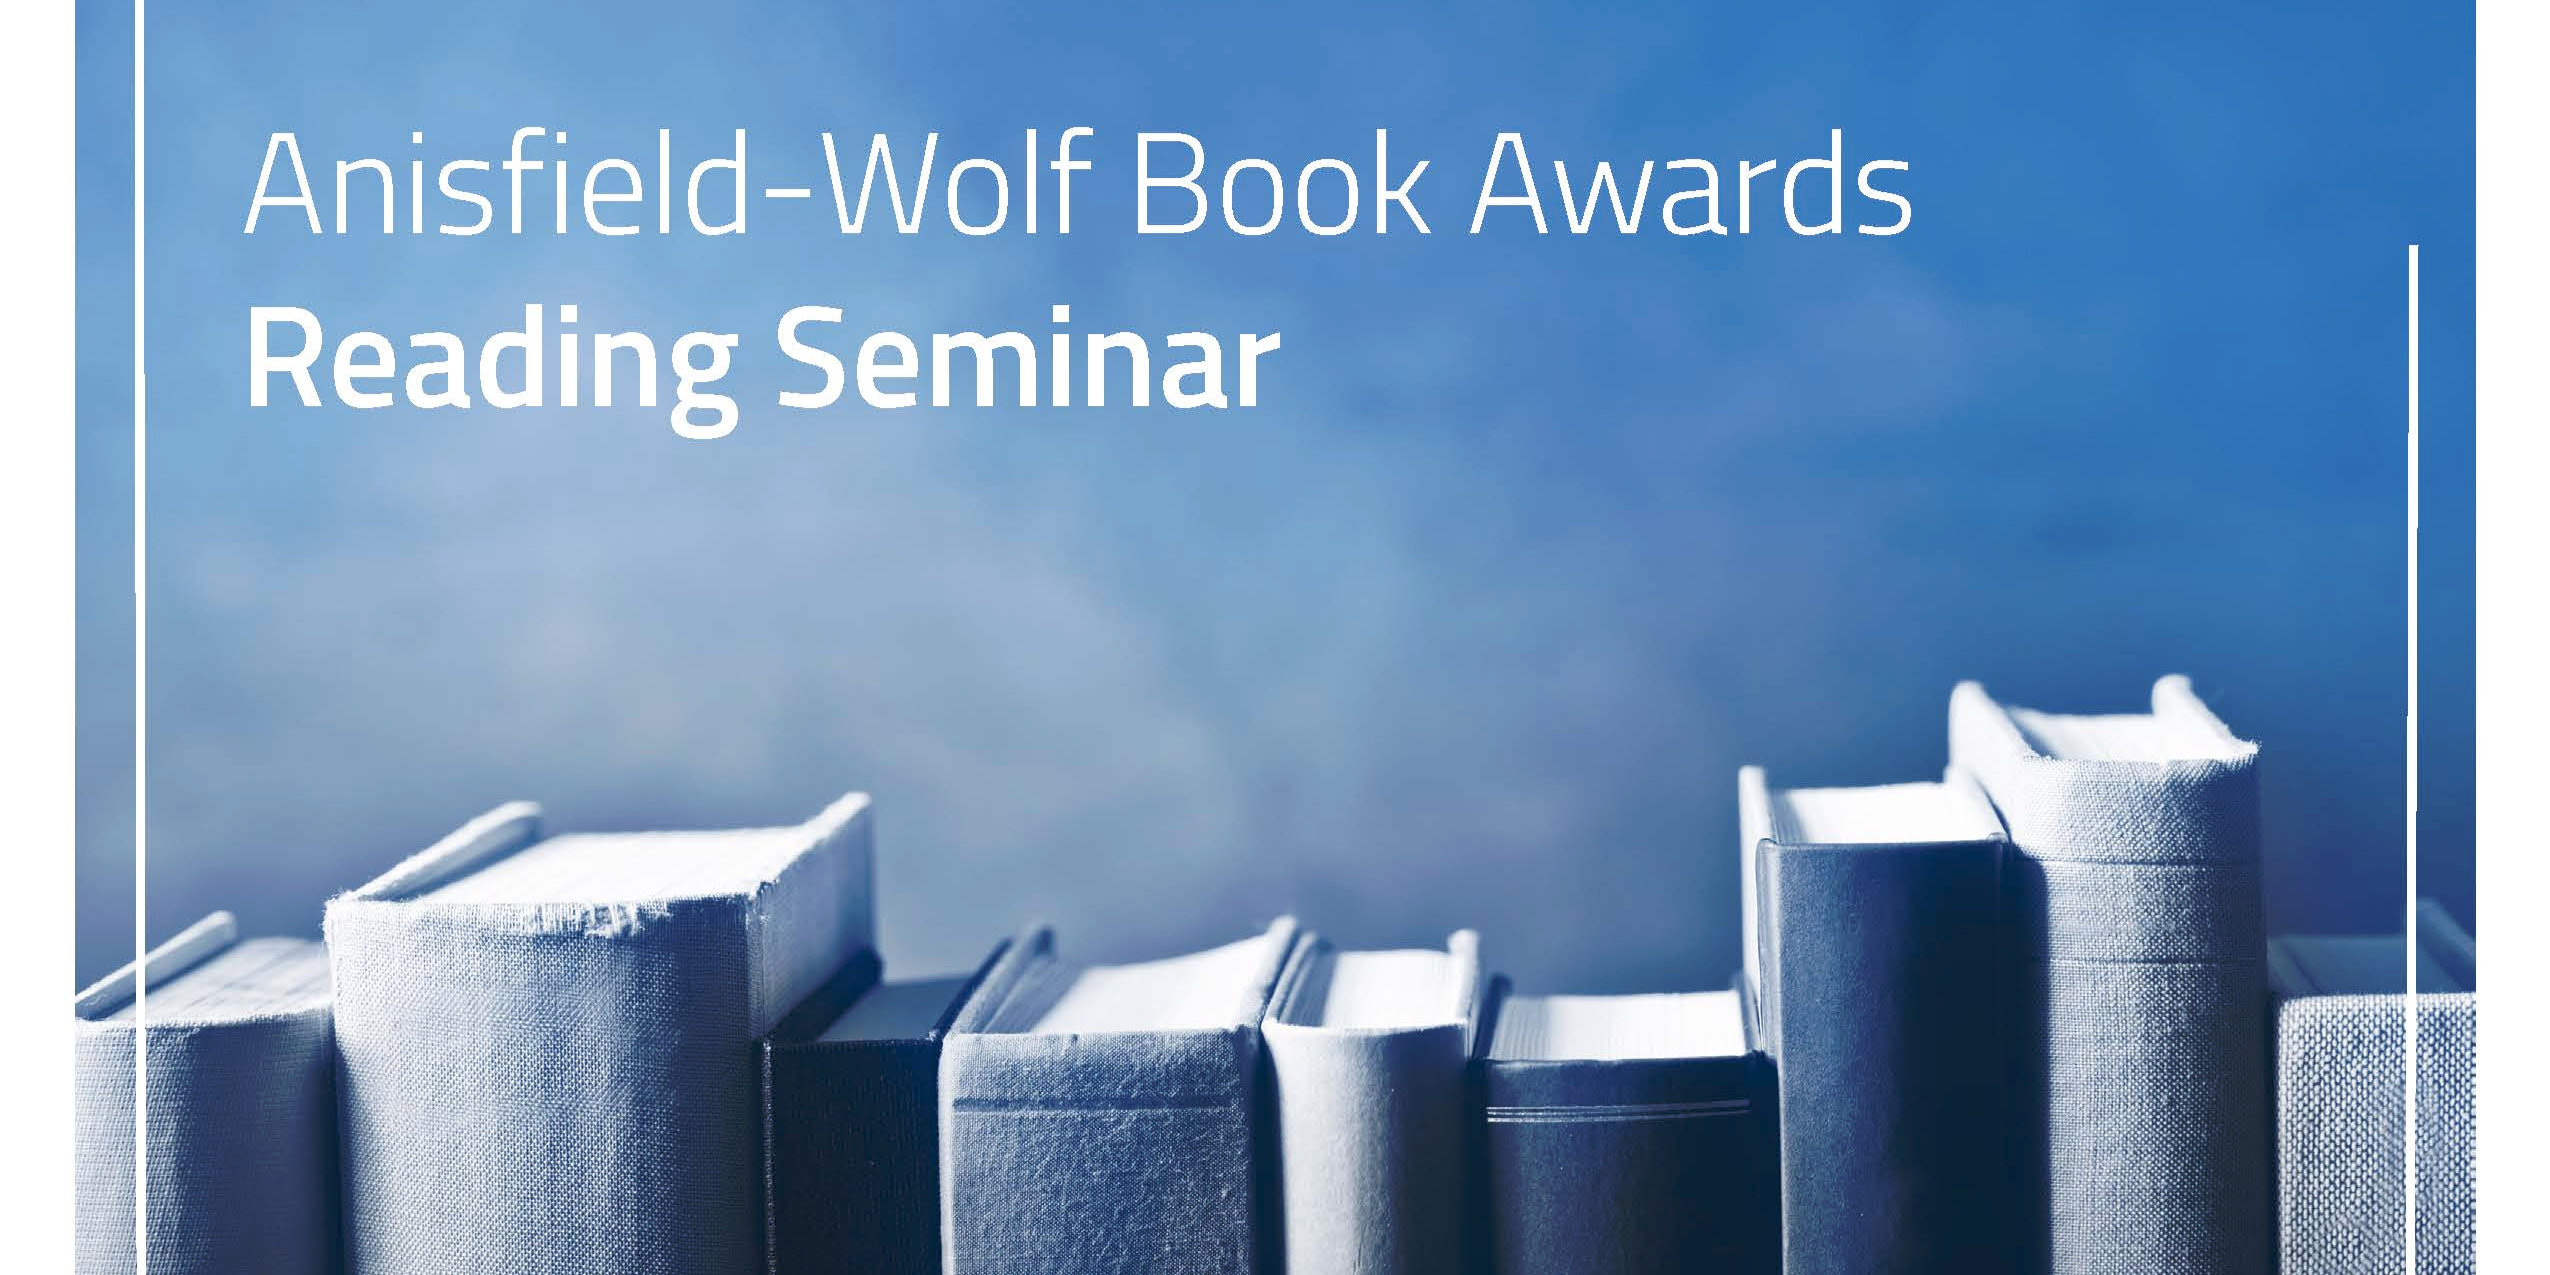 Anisfield-Wolf Book Awards Reading Seminar:  Amazing Grace: The Lives of Children and the Conscience of a Nation by Jonathan Kozol